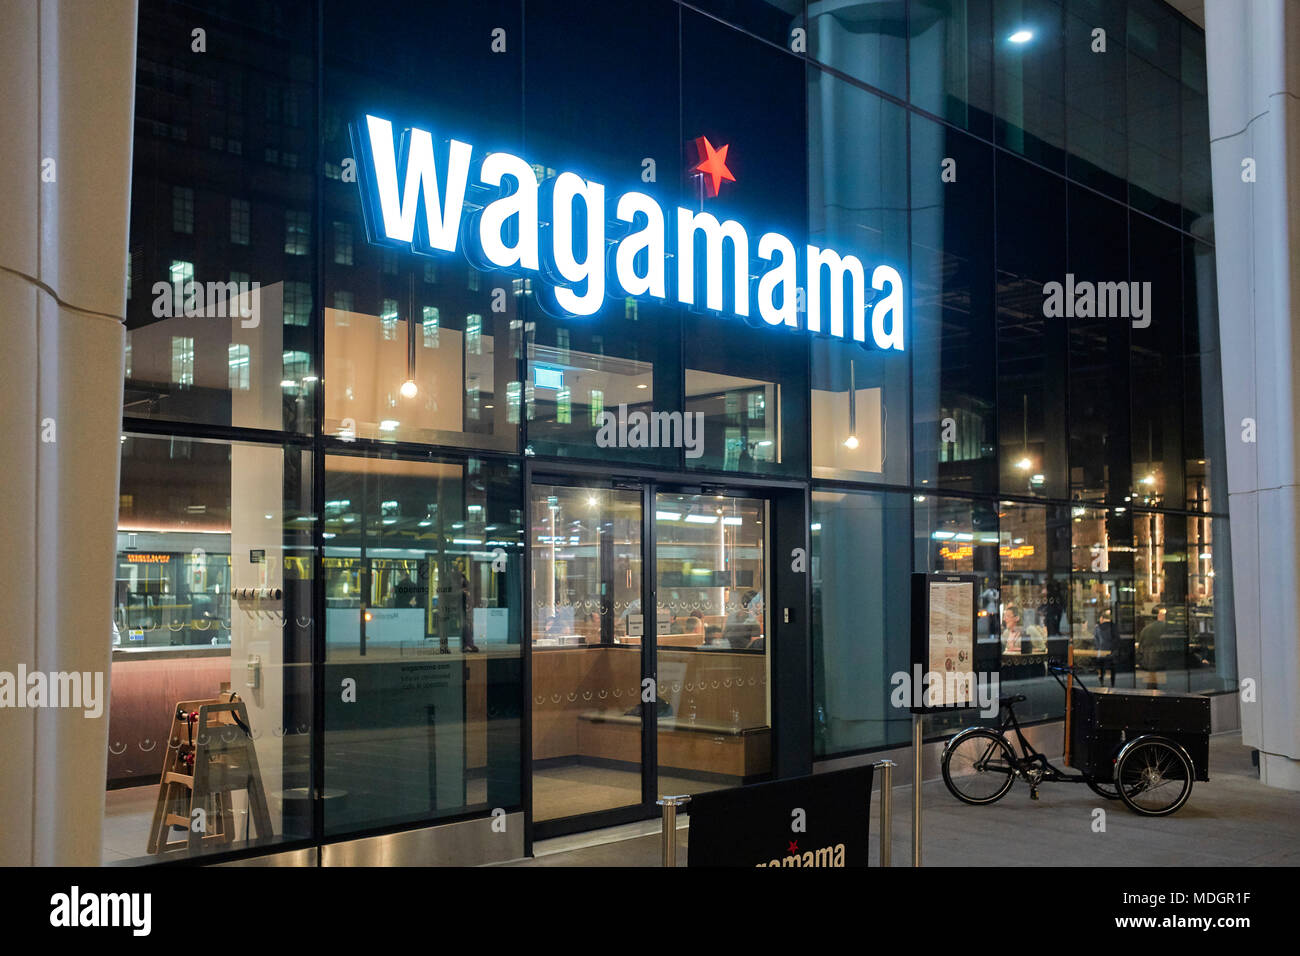 Wagamama restaurant at night in St Peter's Square, Manchester - Stock Image